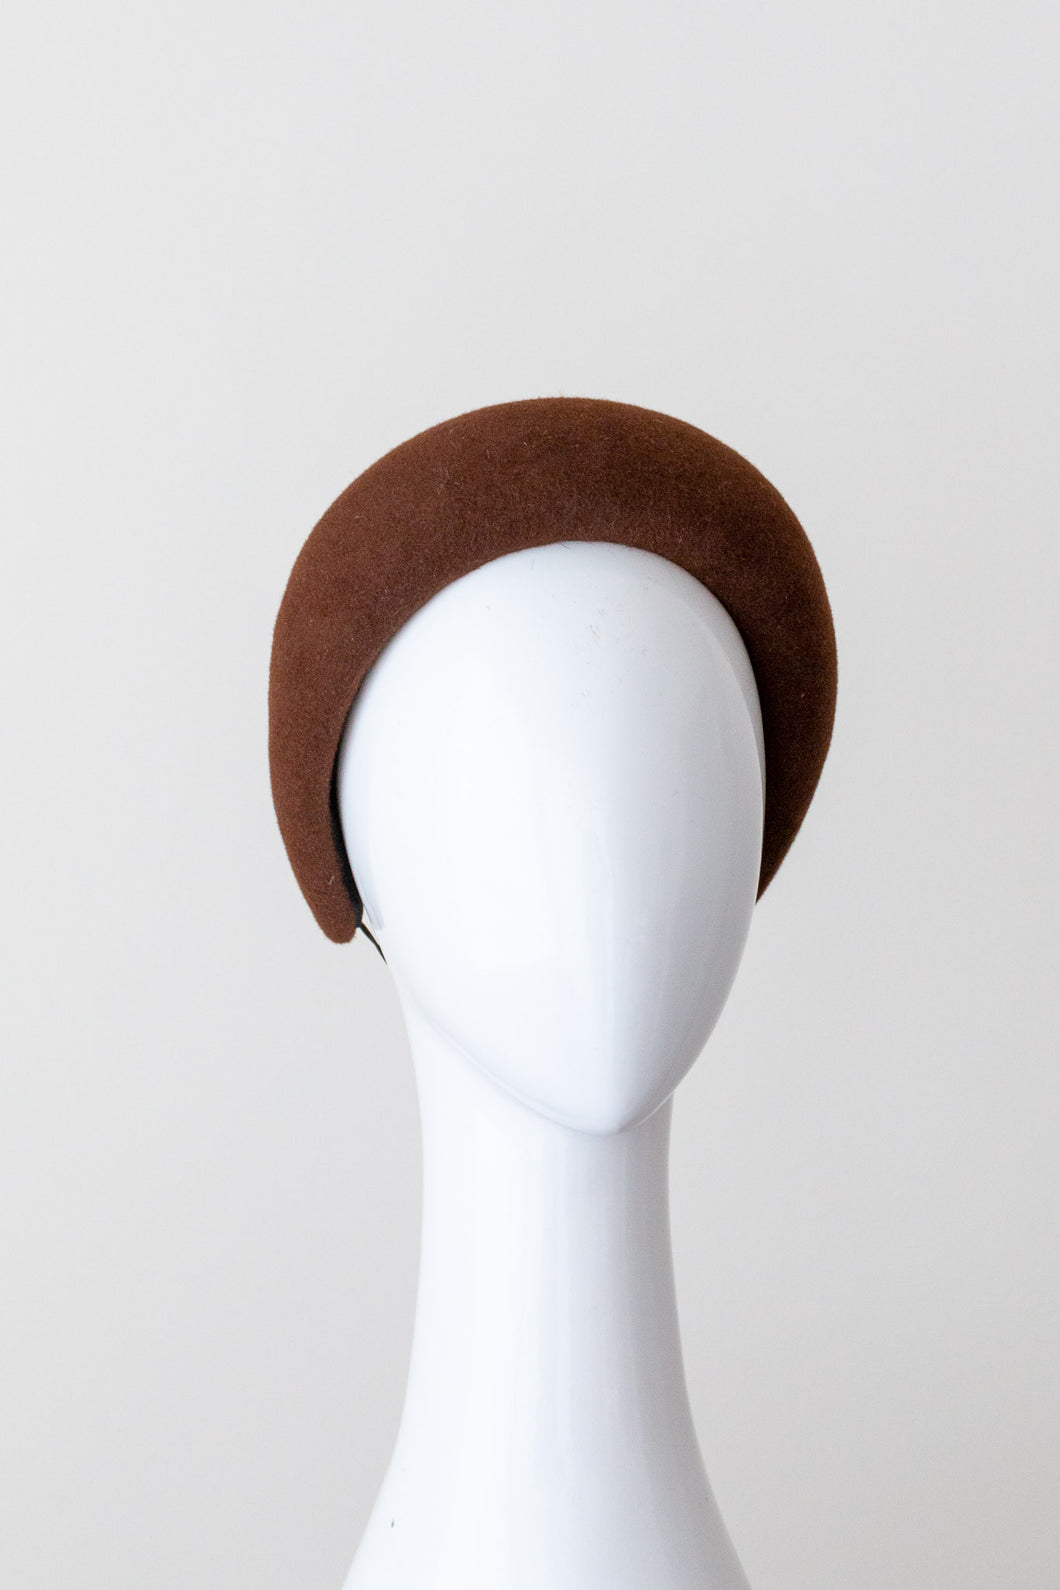 Rich Brown Halo Headband by Felicity Northeast Millinery